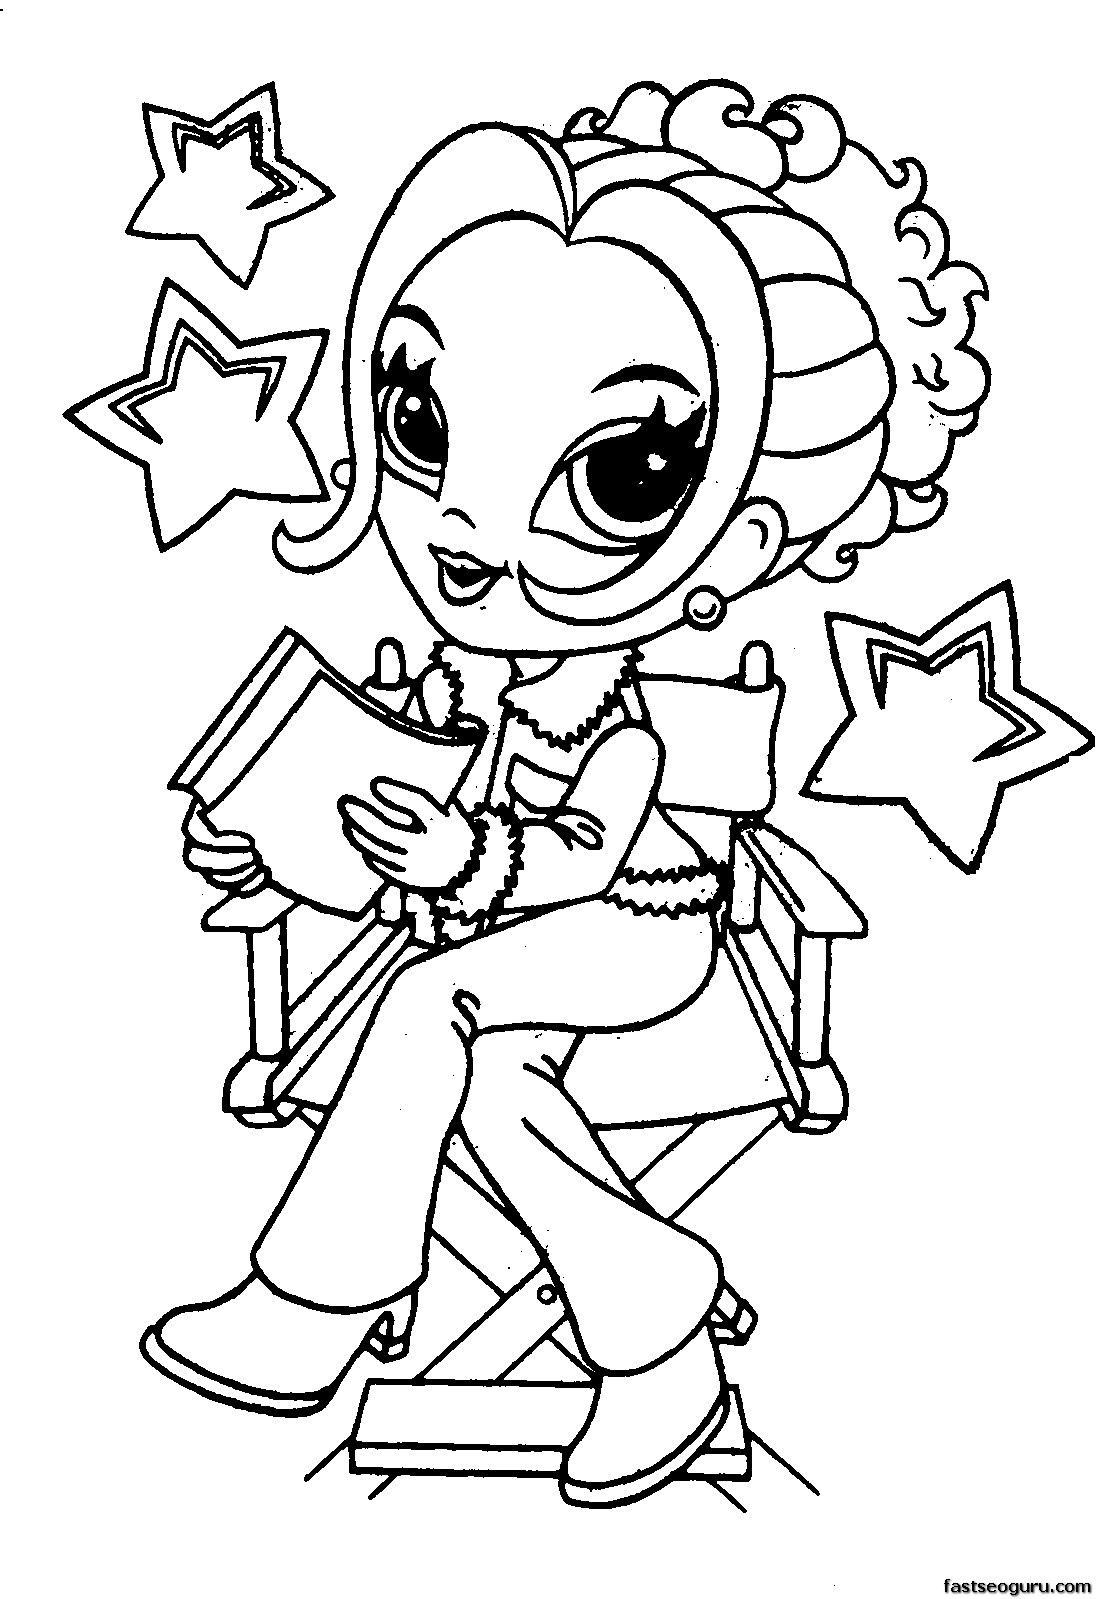 Coloring Sheets For Girls To Color Now  cute coloring pages for girls to print